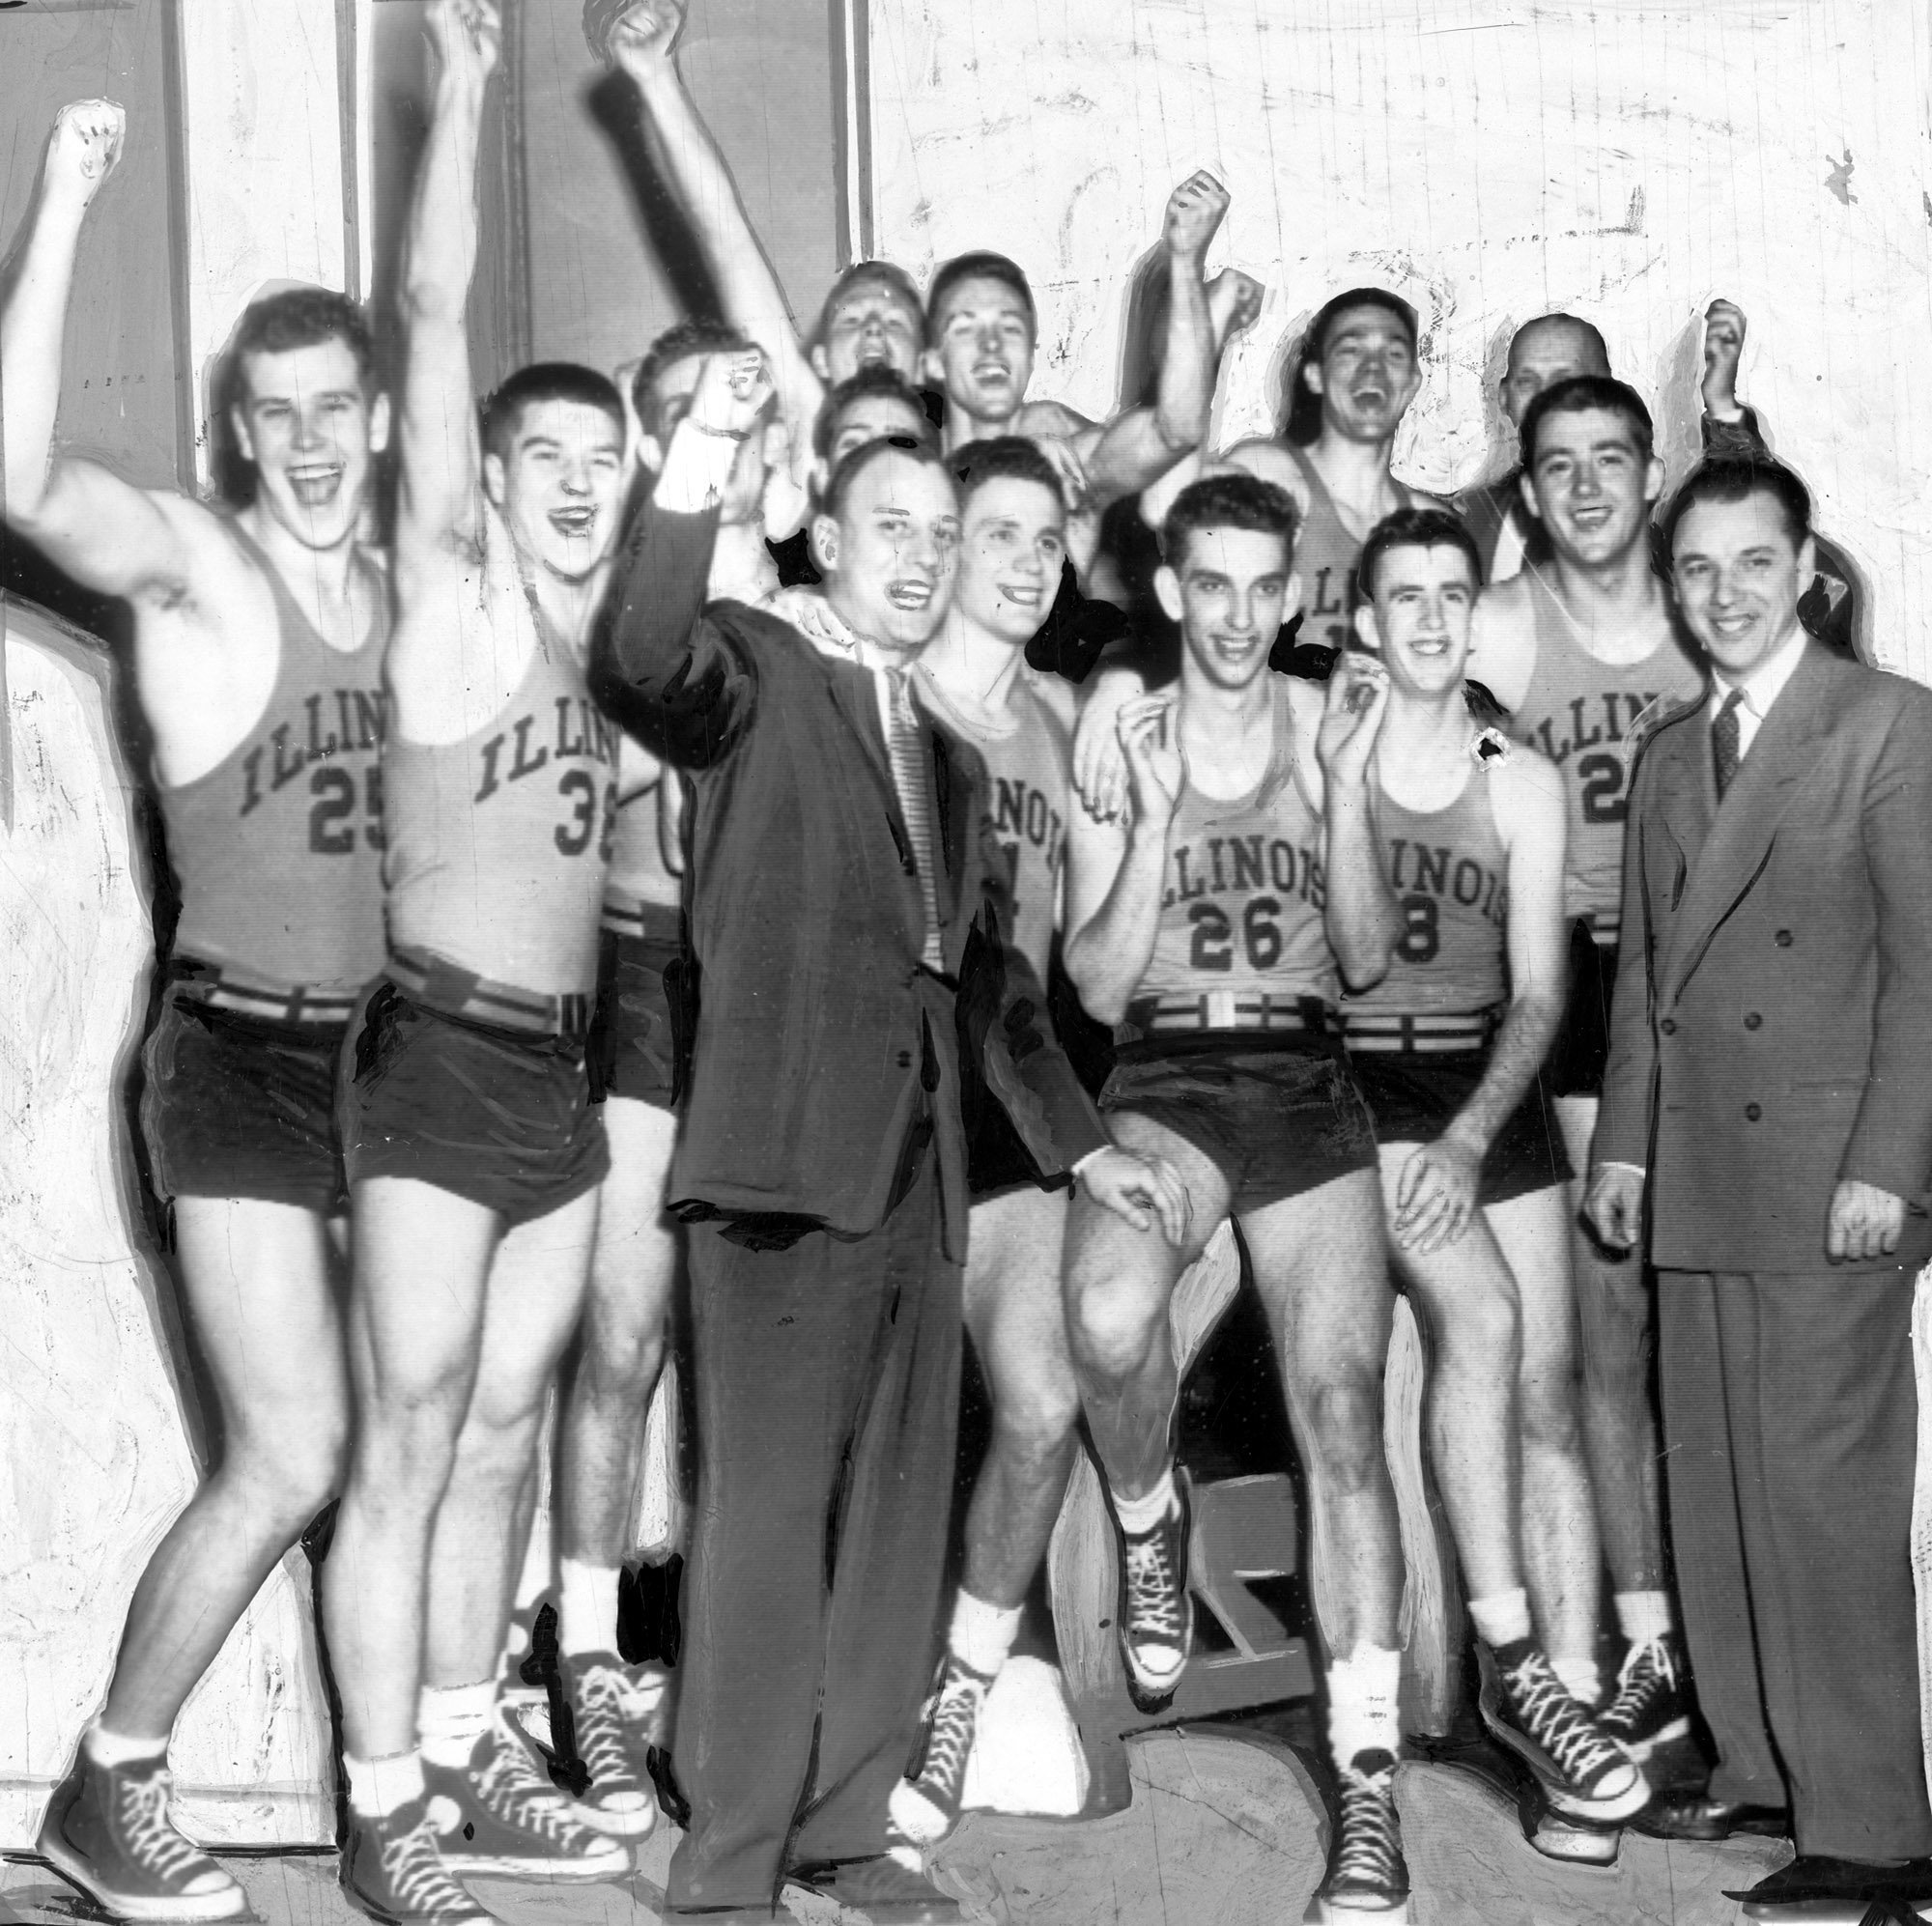 Other Team Sports: Loyola's Predecessors: The 10 Other Final Four Teams From